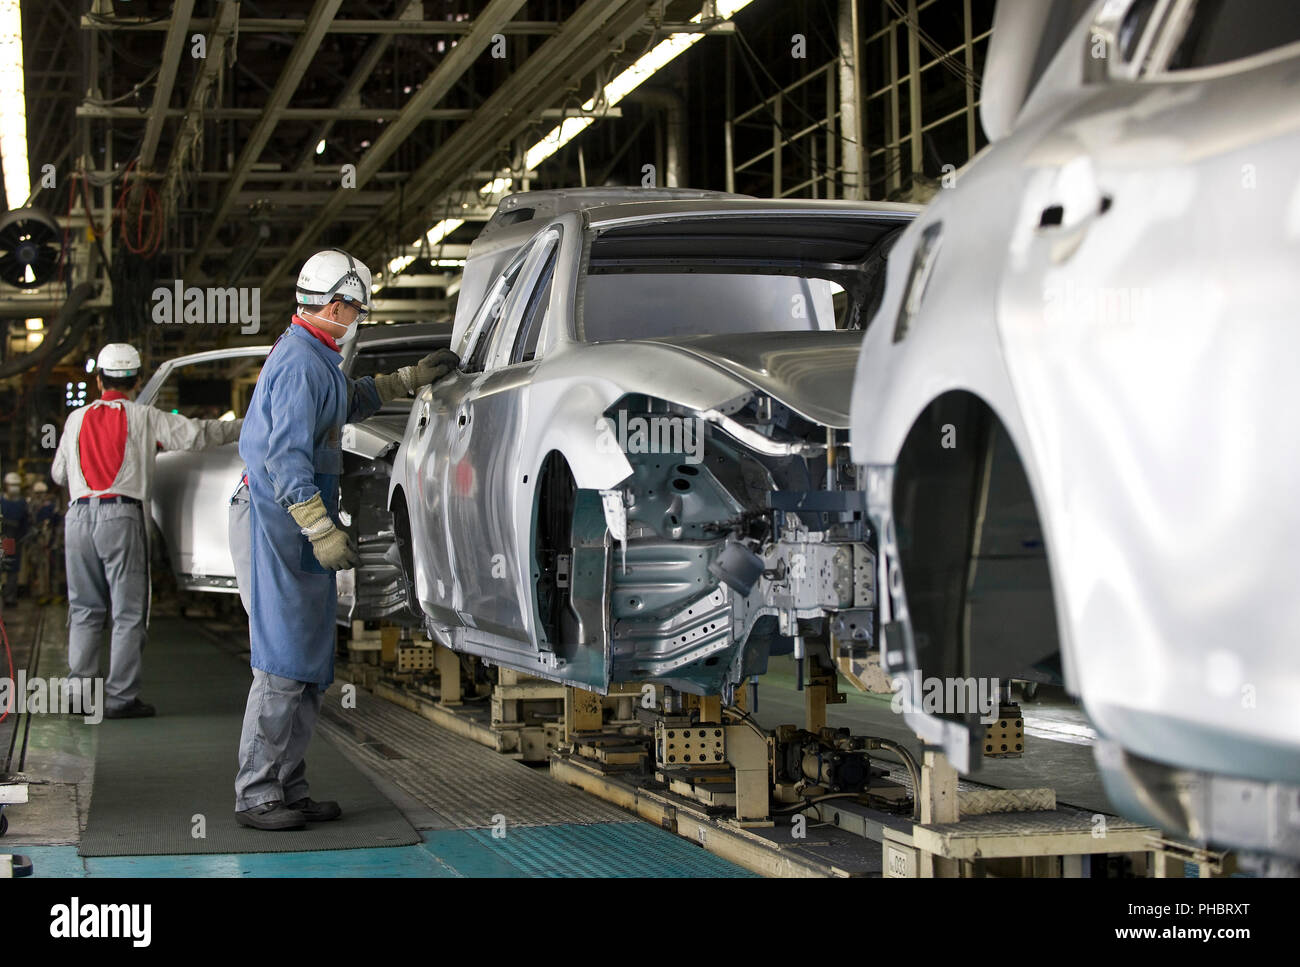 Mitarbeiter arbeiten an einem Fahrzeug bei Nissan Motor Co. s Montagewerk in Tochigi, Japan am Donnerstag, den 12. November 2009. Fotograf: Robert Gilhooly Stockbild